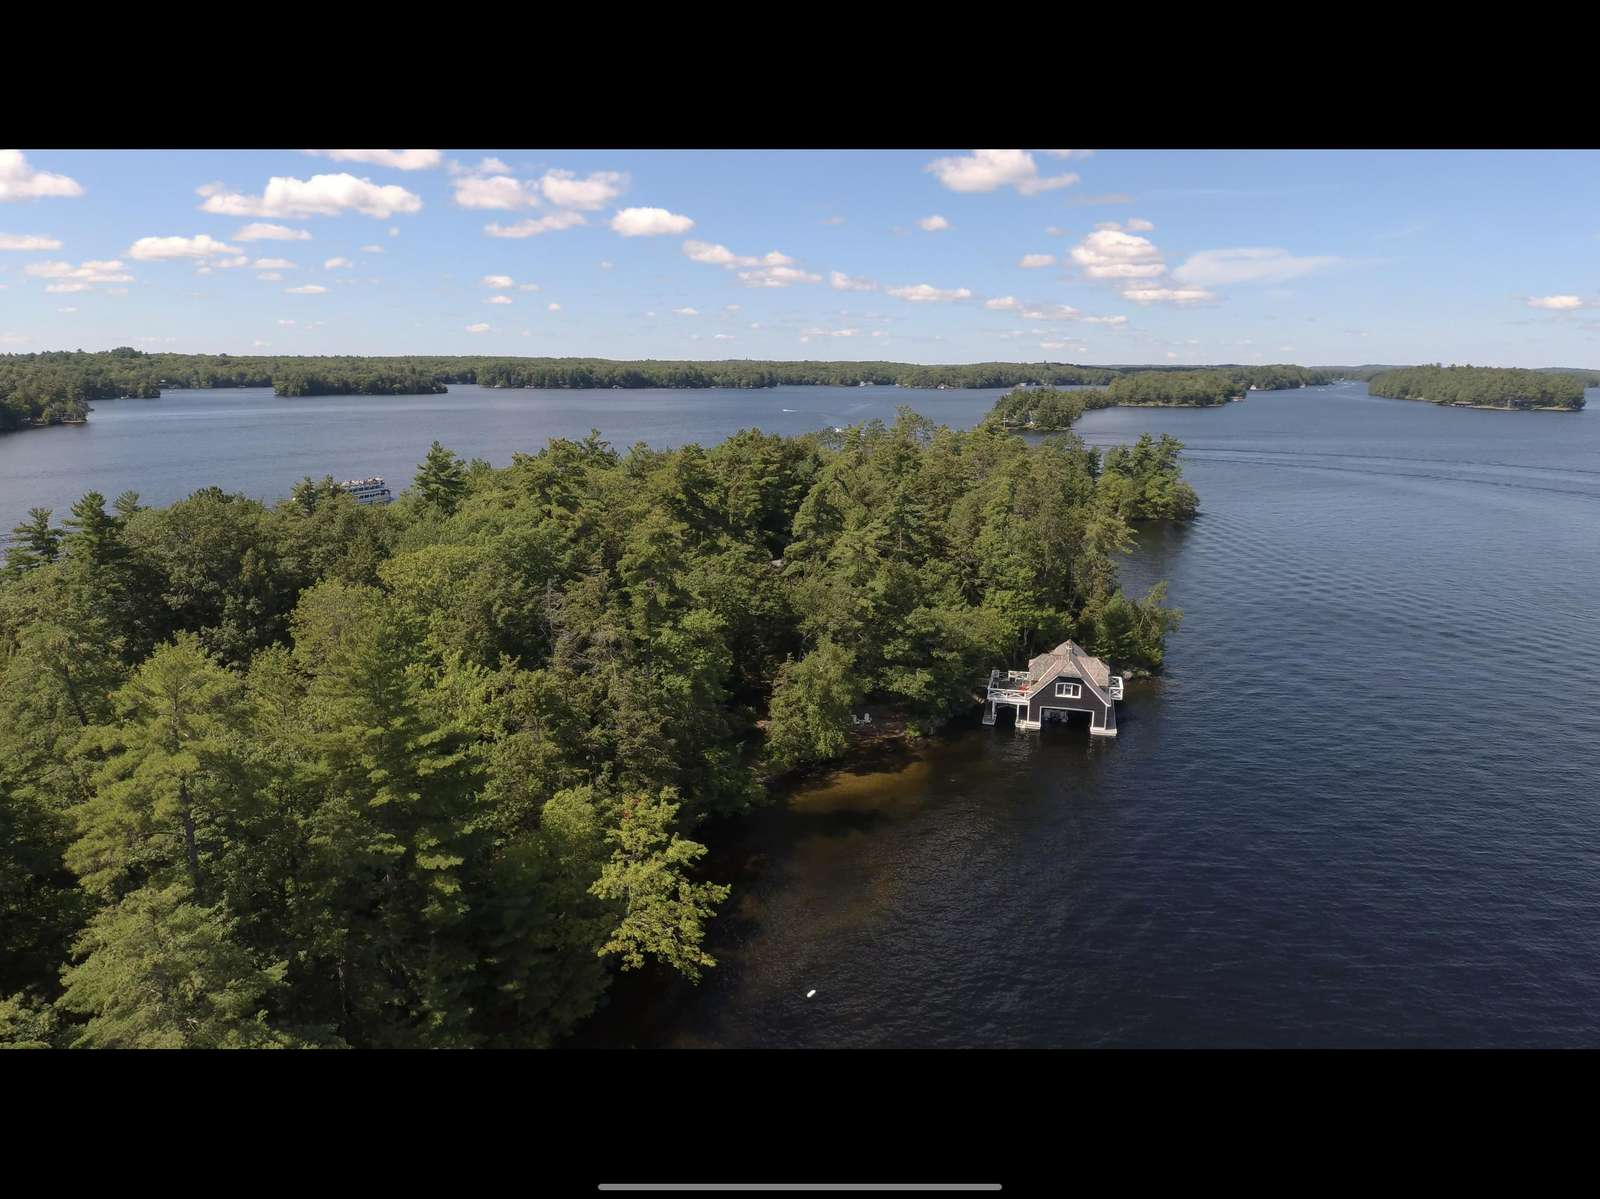 2nd Boathouse Aerial View